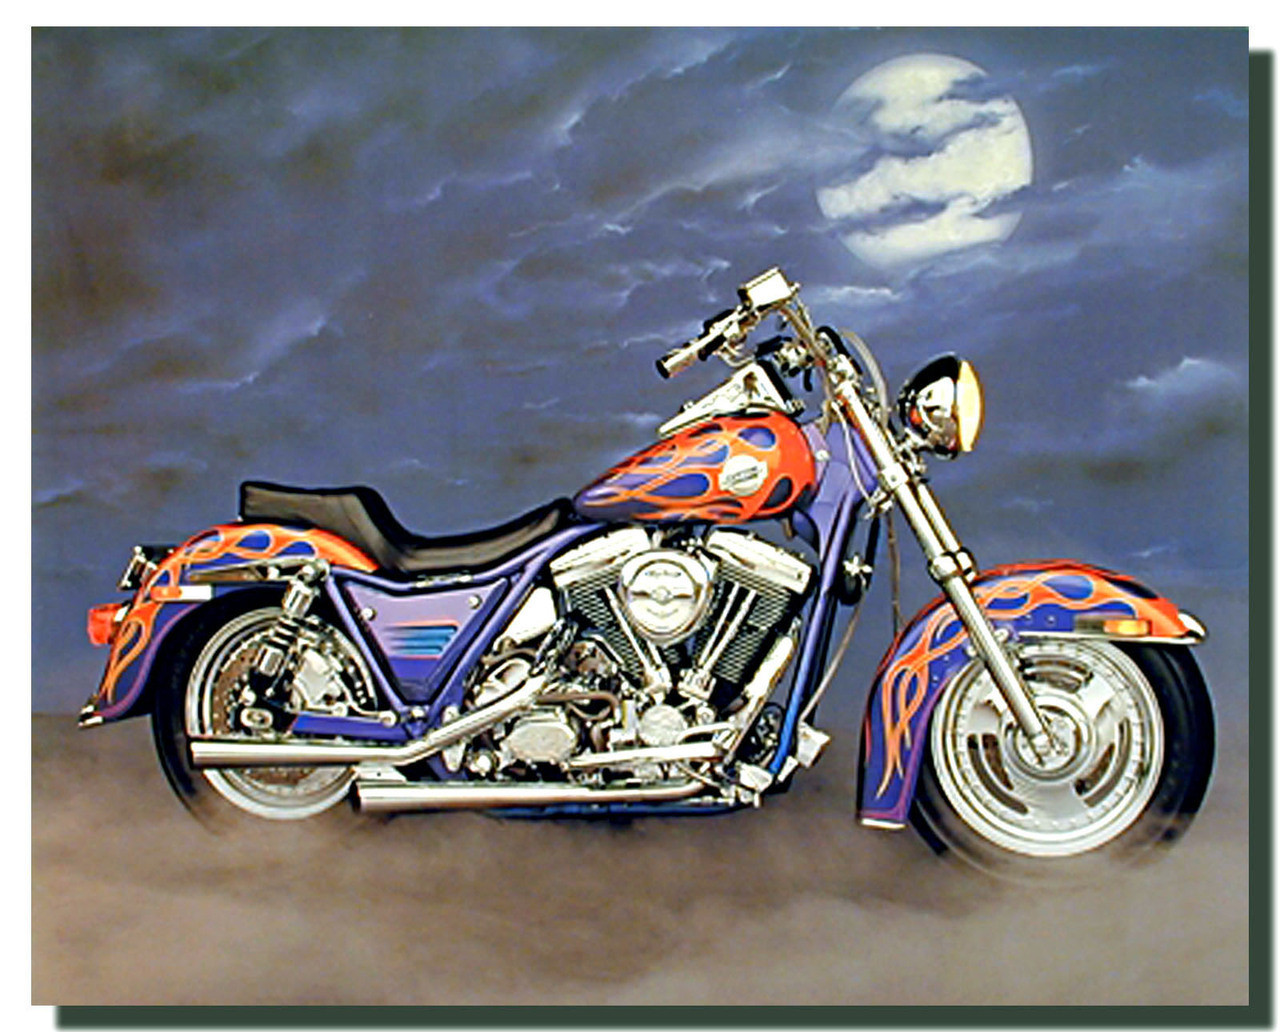 1986 Fxr Harley Motorcycle Poster Posters